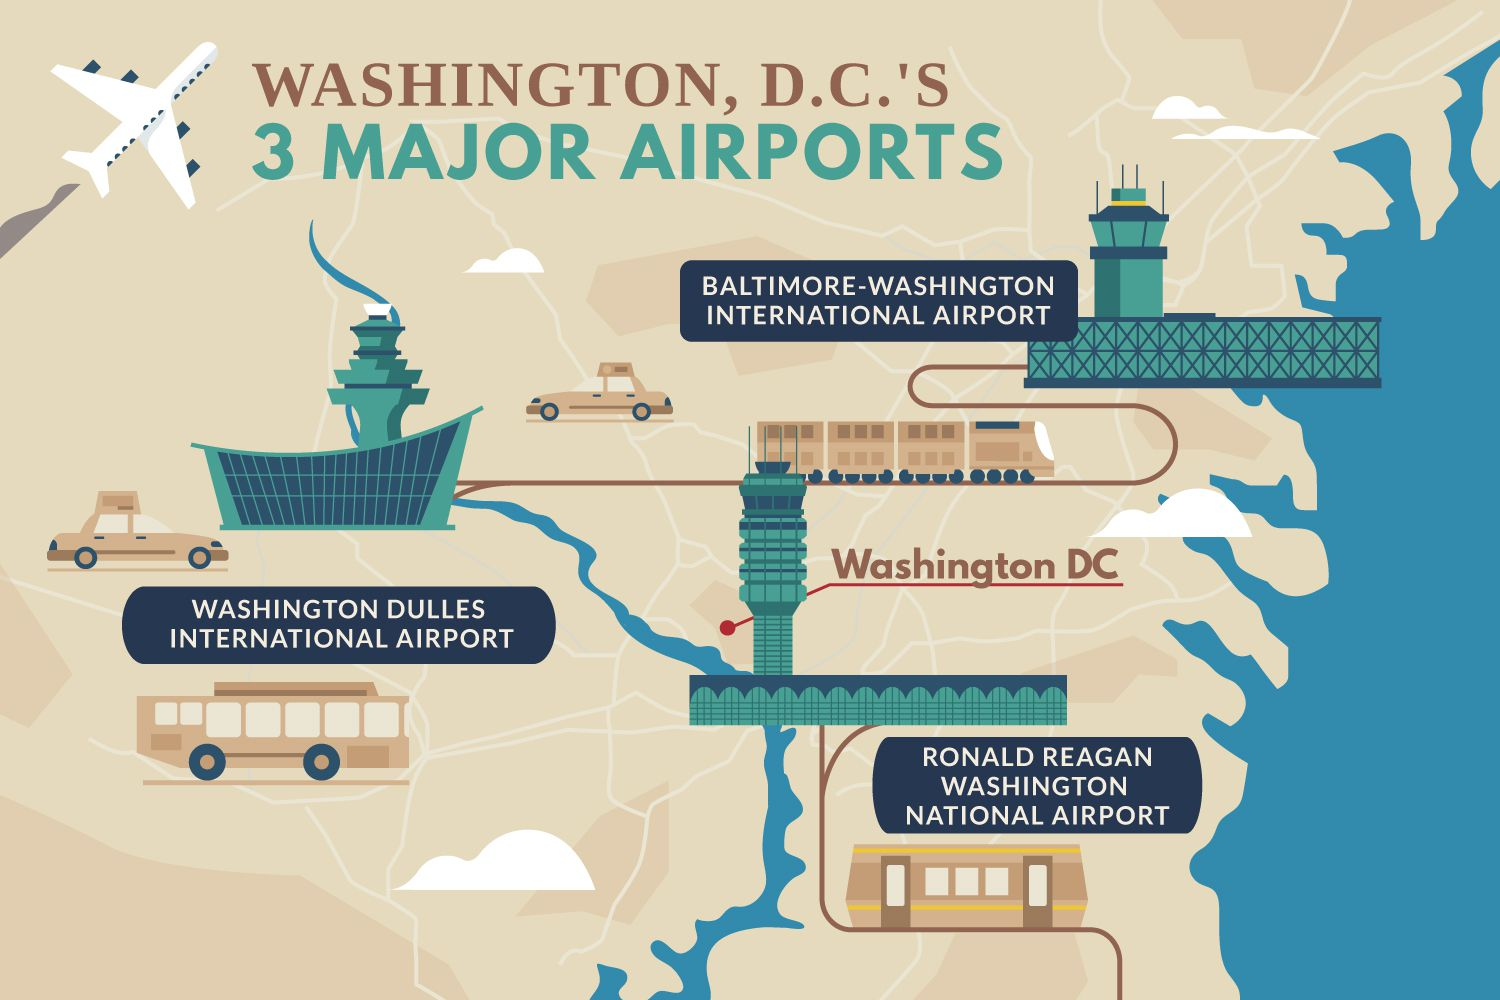 A Guide to Airports Near Washington, D.C.